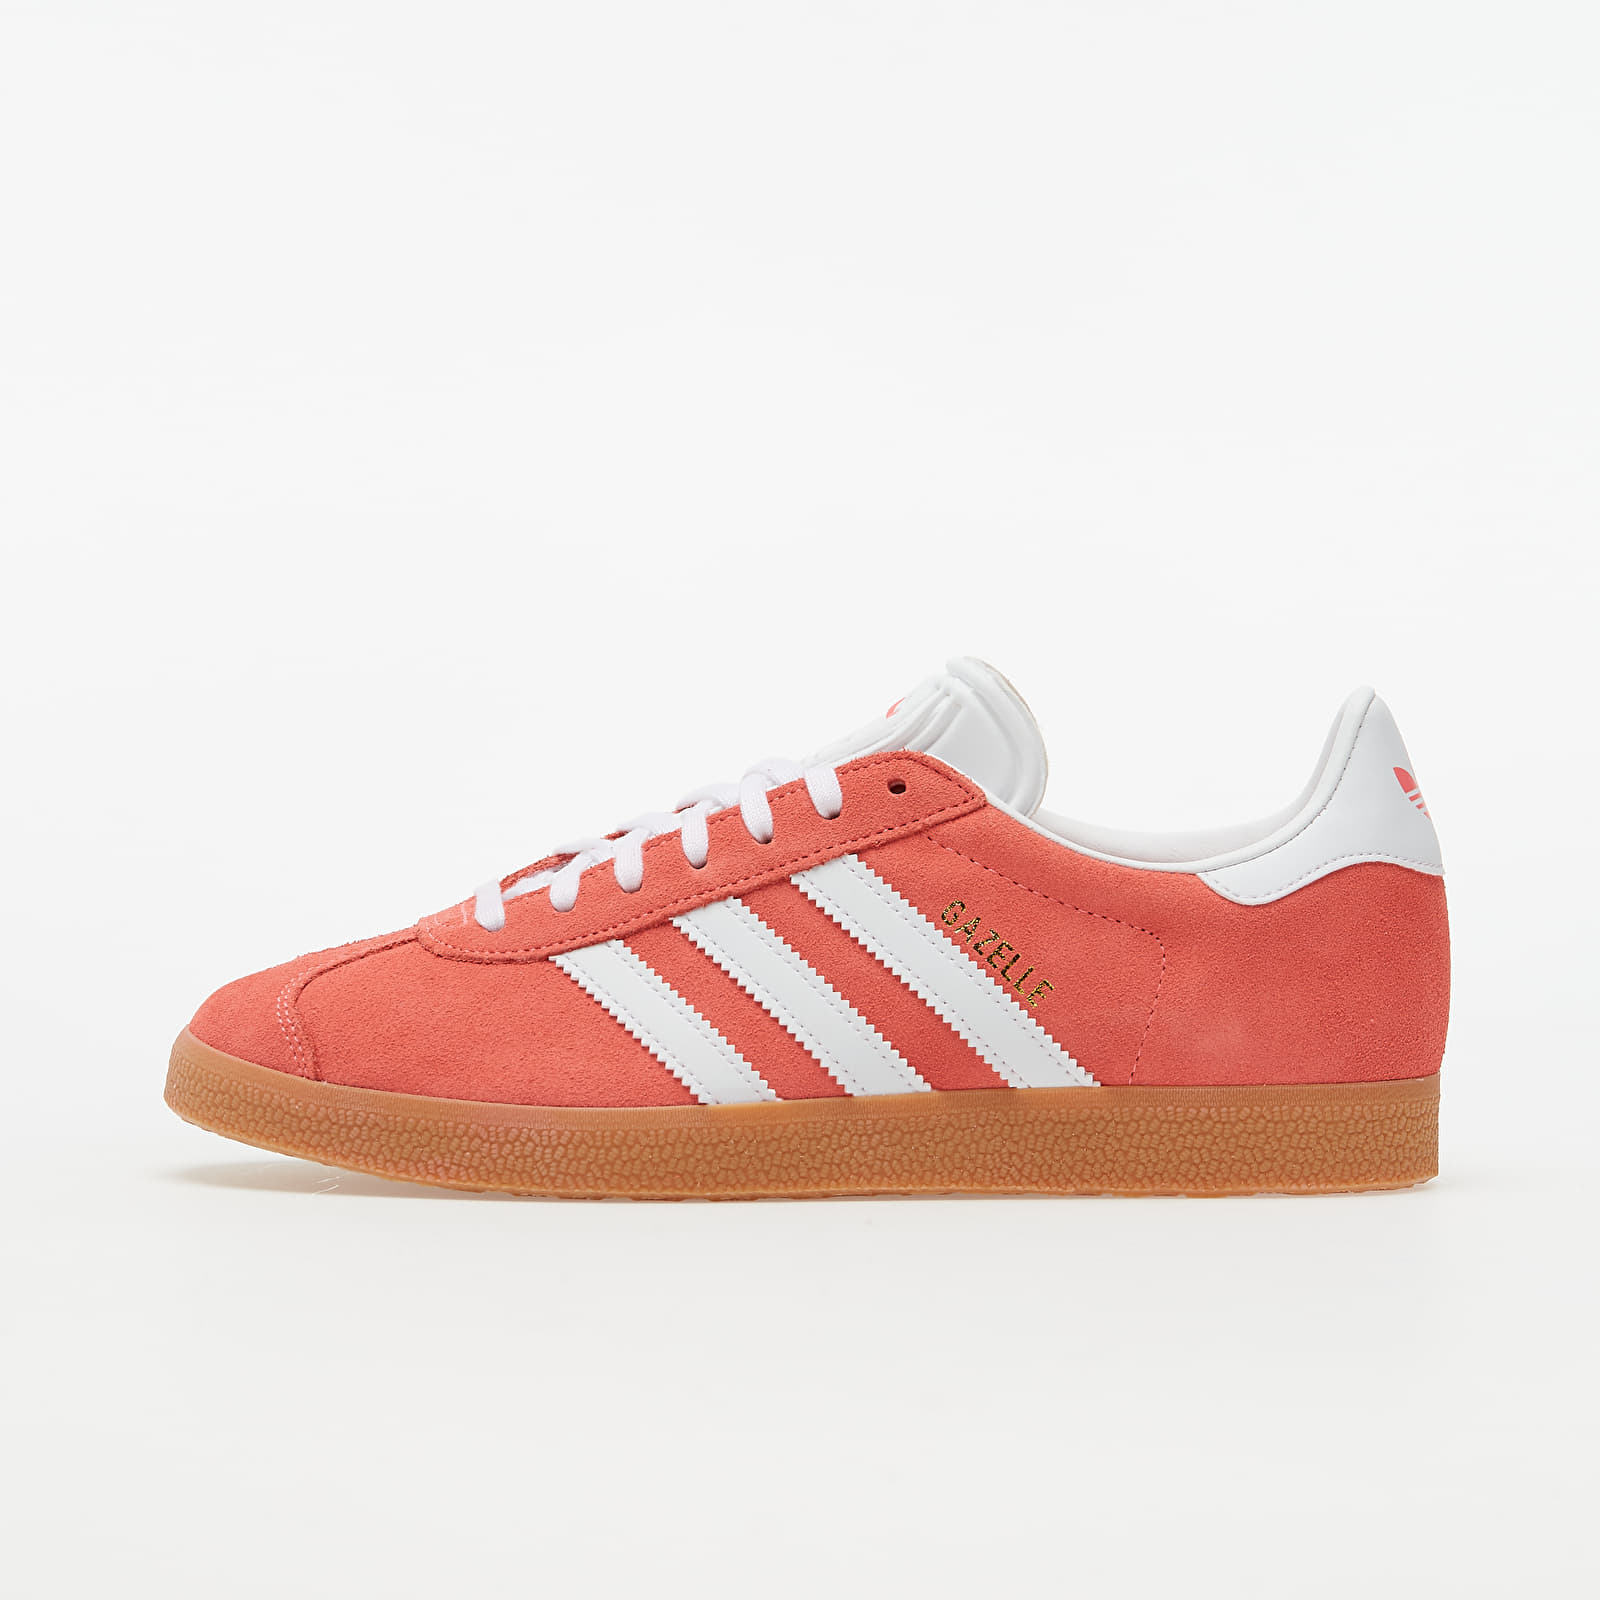 adidas Gazelle W Semi Flash Red/ Ftw White/ Gum 2 EUR 38 2/3